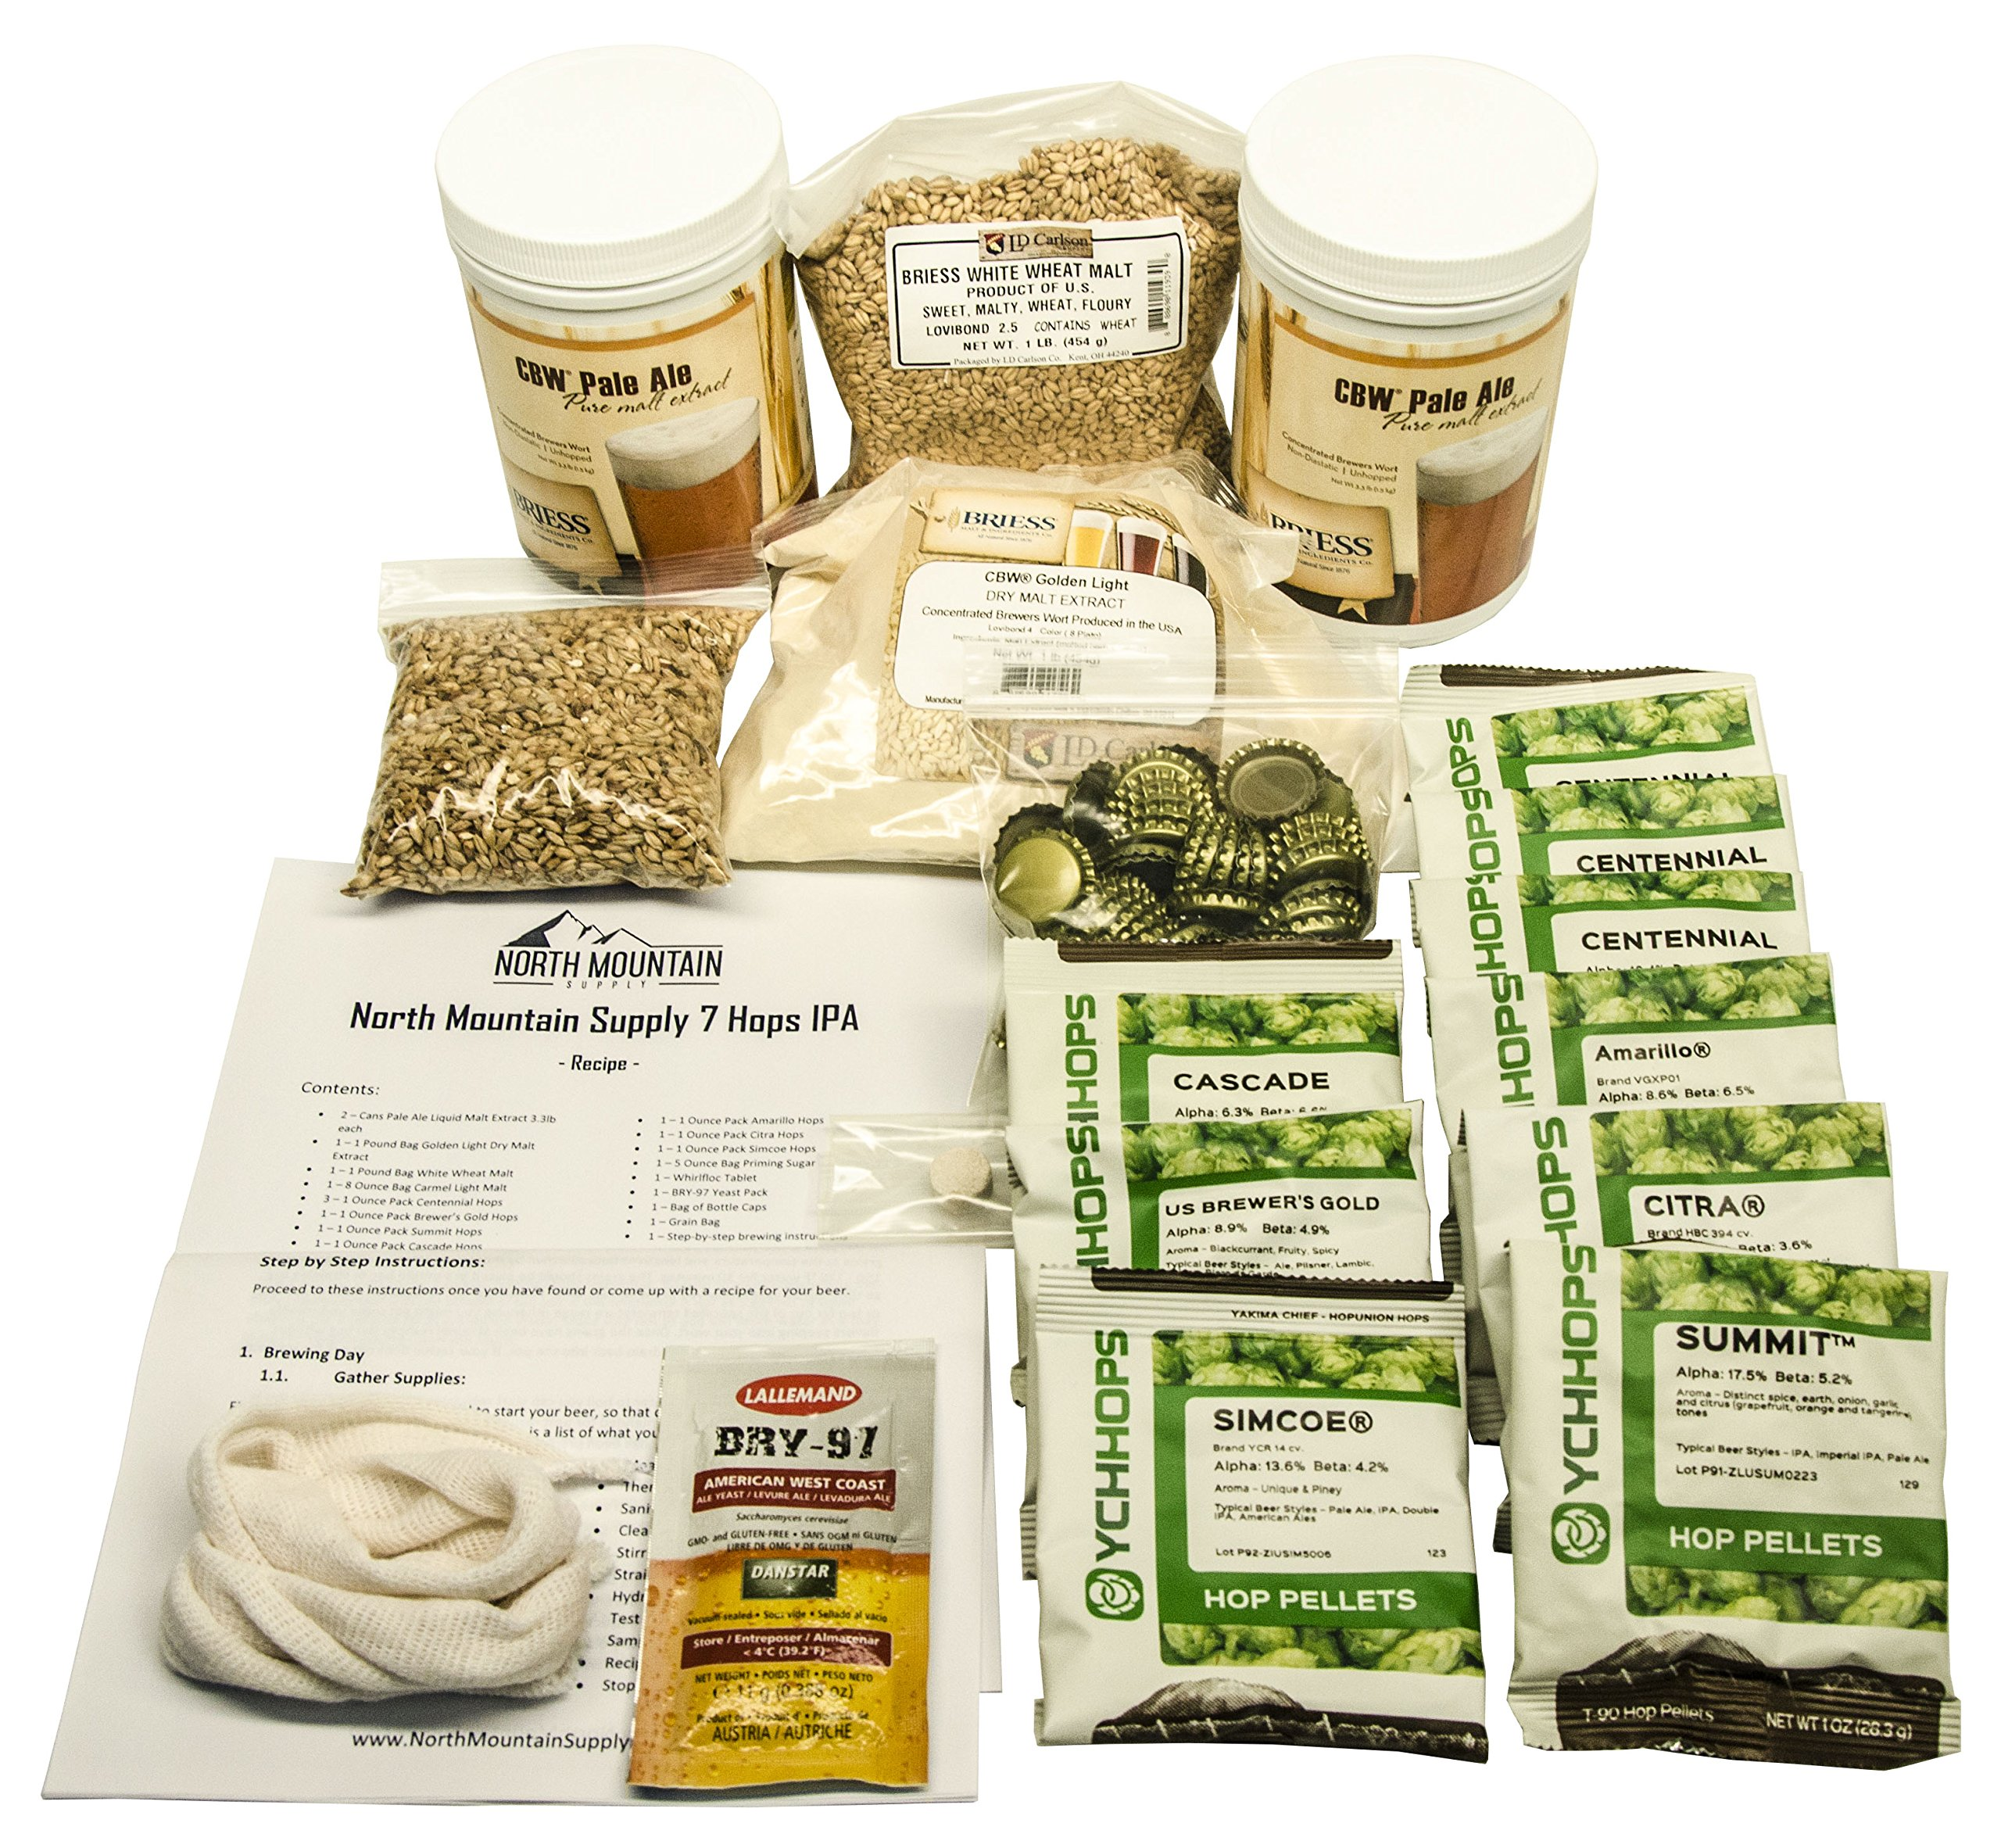 North Mountain Supply 7 Hops IPA Recipe Ingredient Kit - with Step-by-Step Instructions by North Mountain Supply (Image #1)